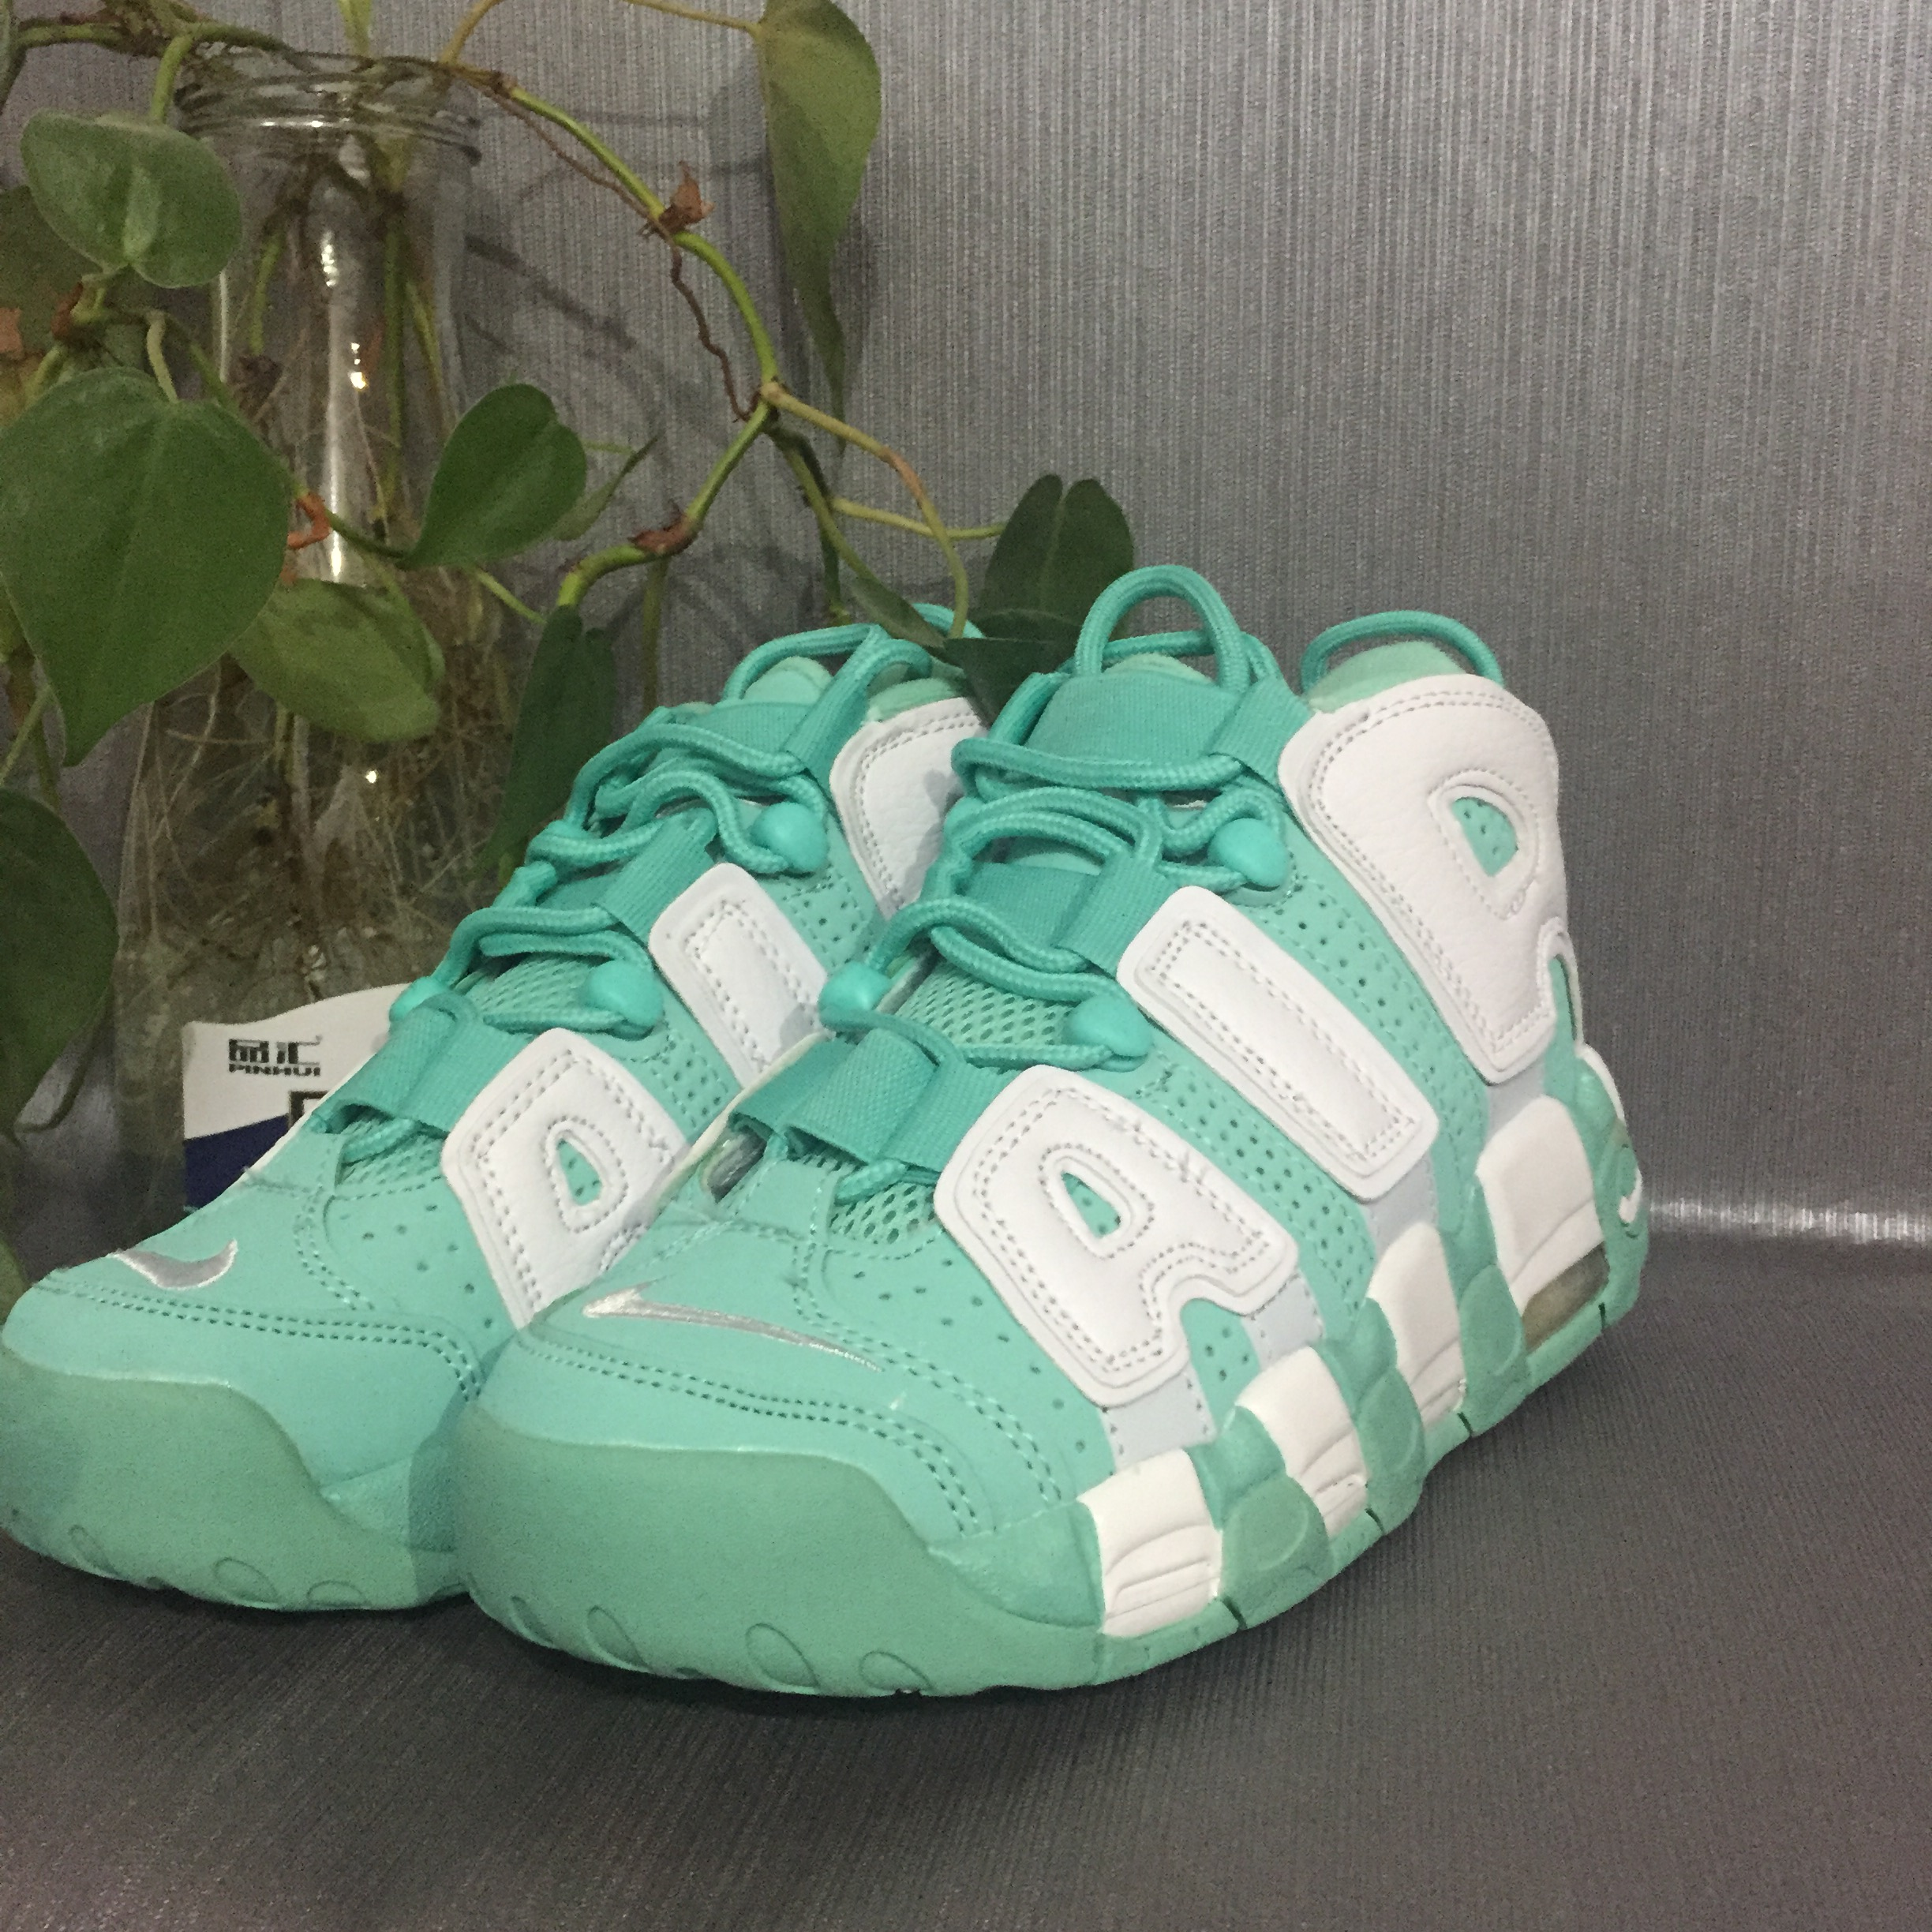 Nike Air More Uptempo White Green Shoes For Women